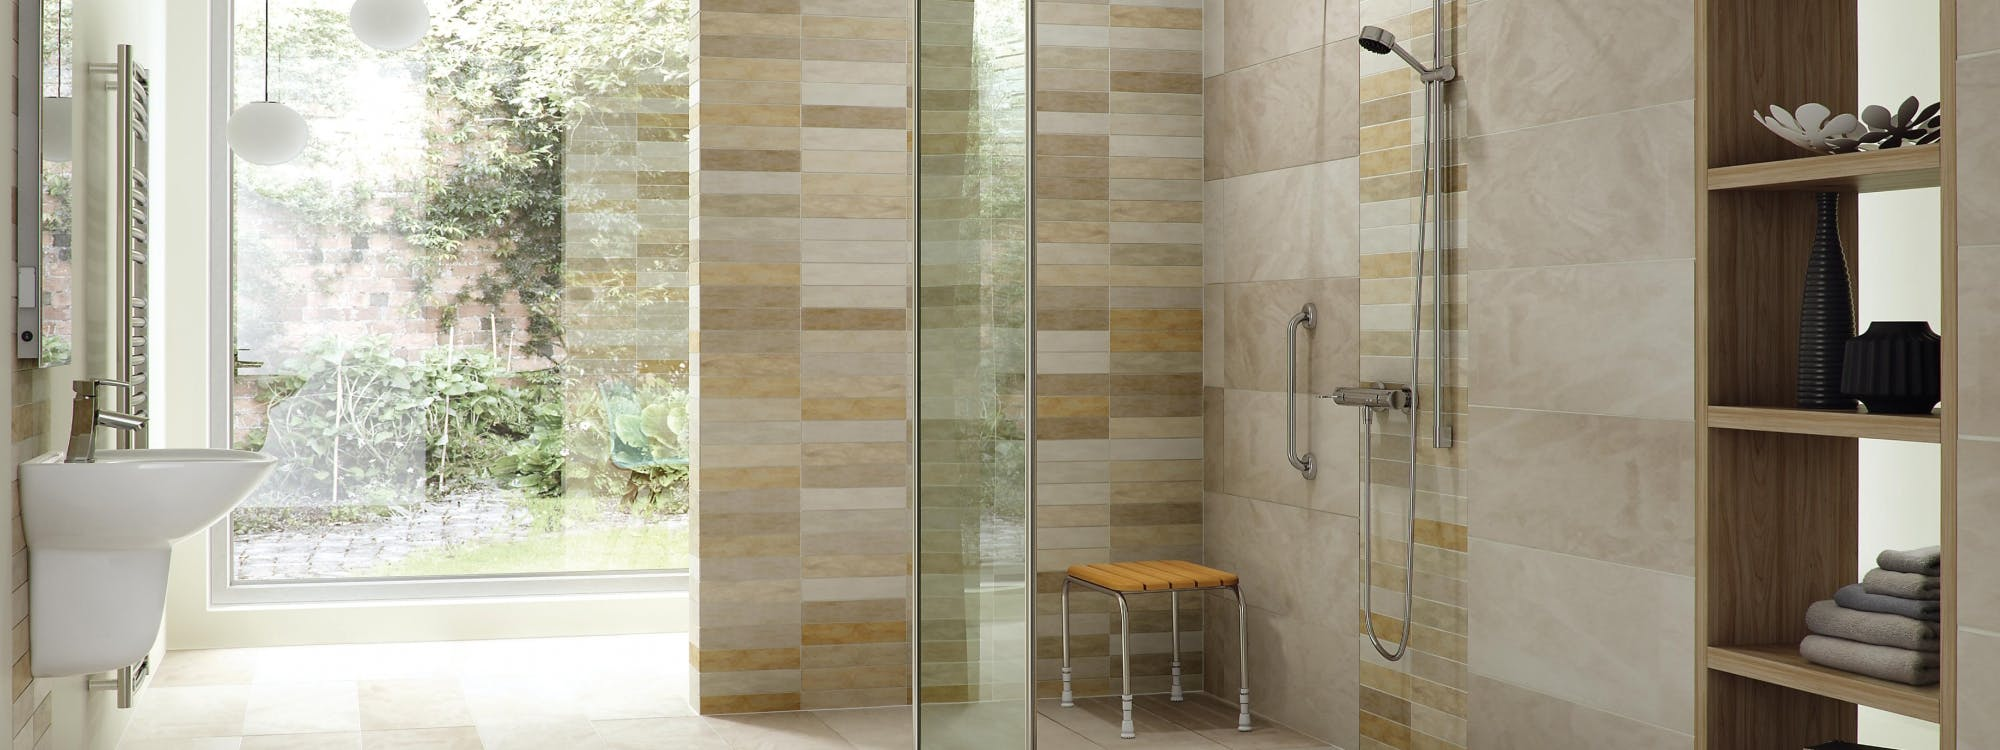 Stylish disabled bathrooms mobility bathrooms more ability - Disabled shower room ...